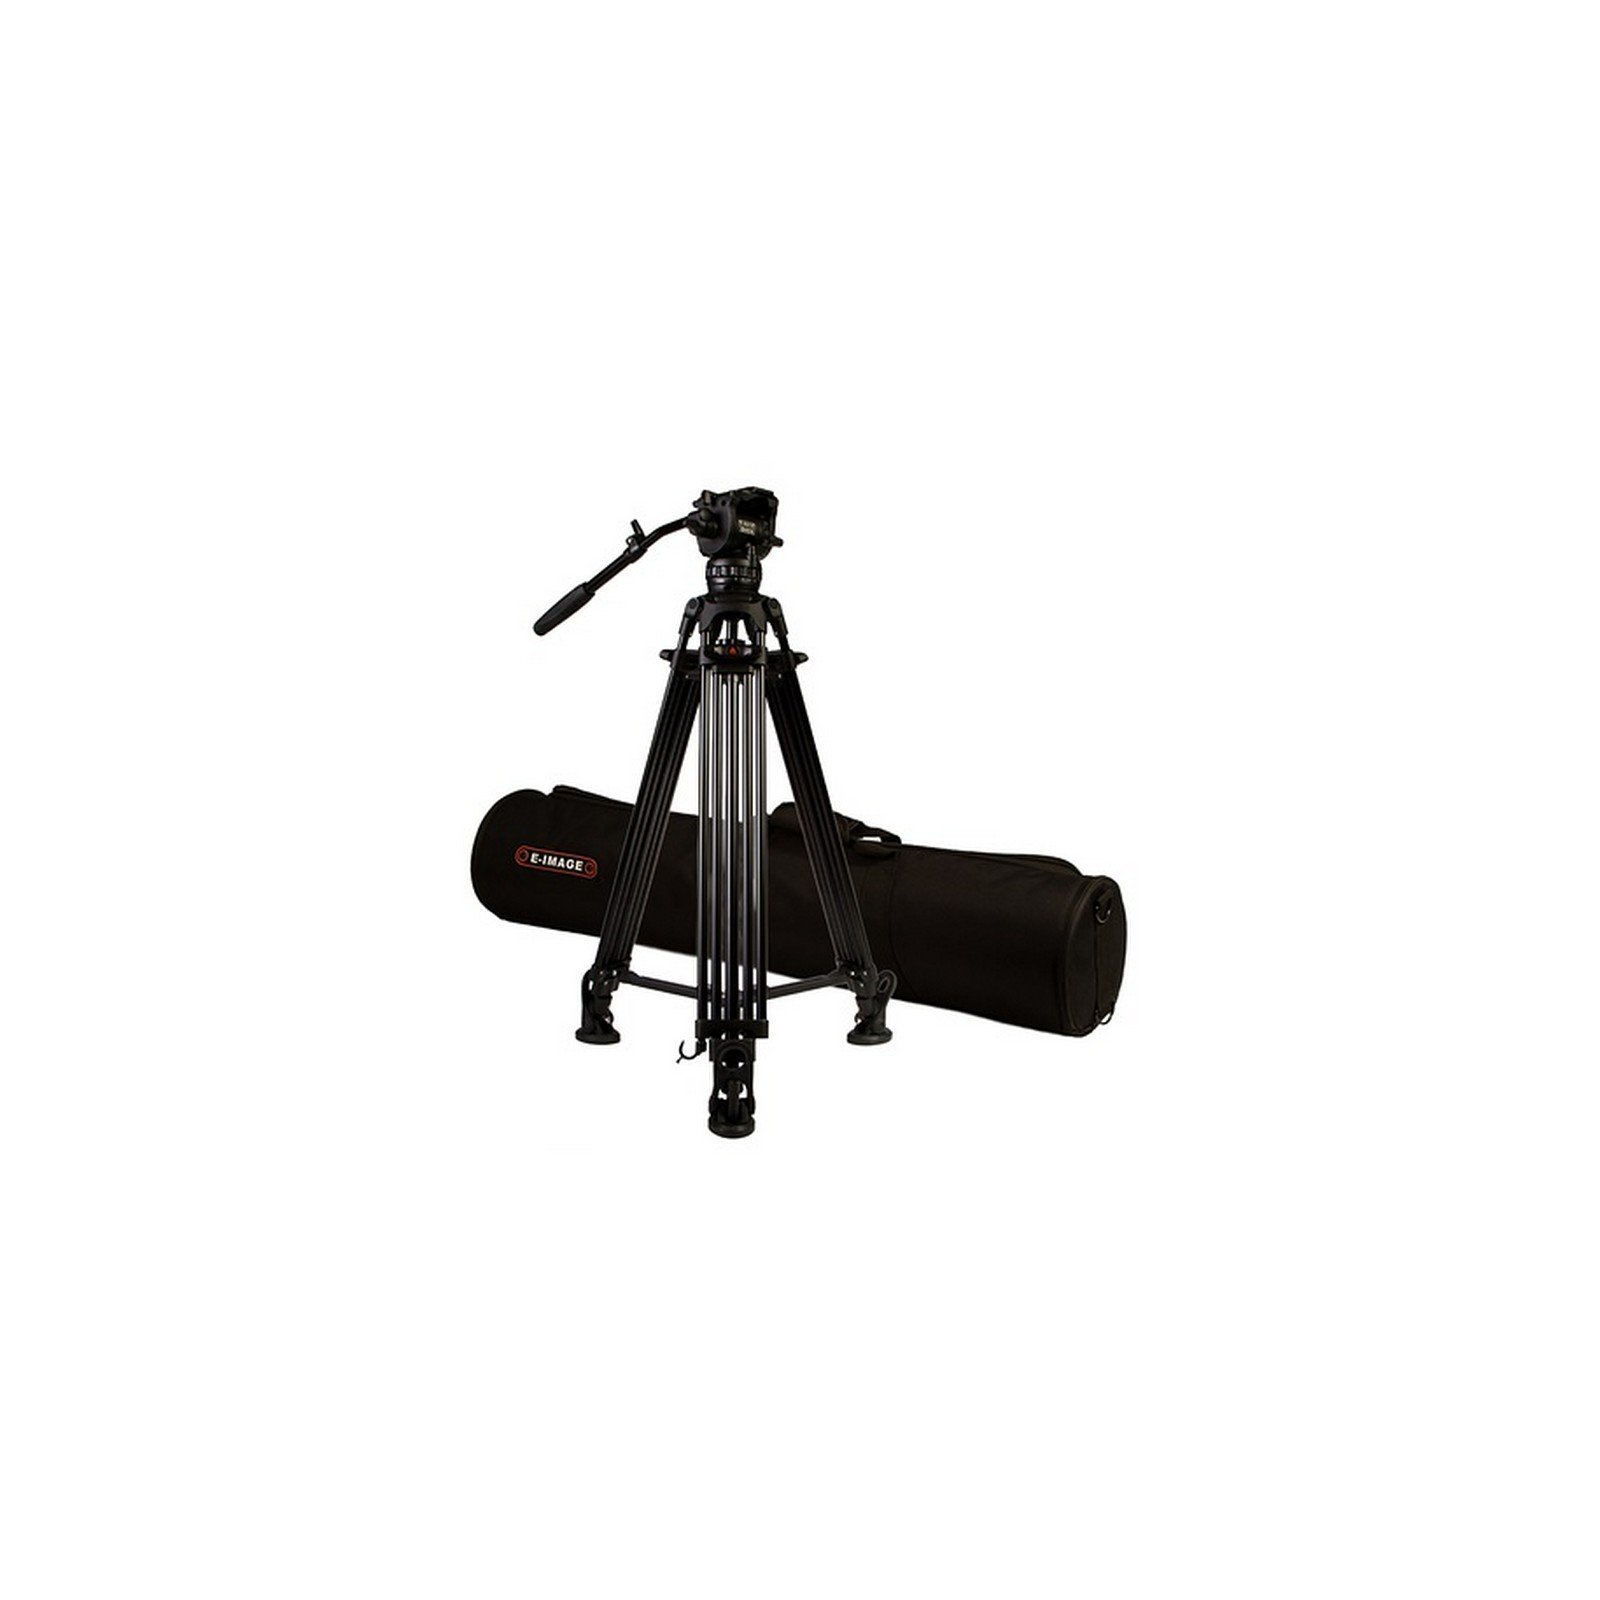 Ikan EG06A2 | Aluminum 2 Stage Tripod with GH06 Head Transport Bag